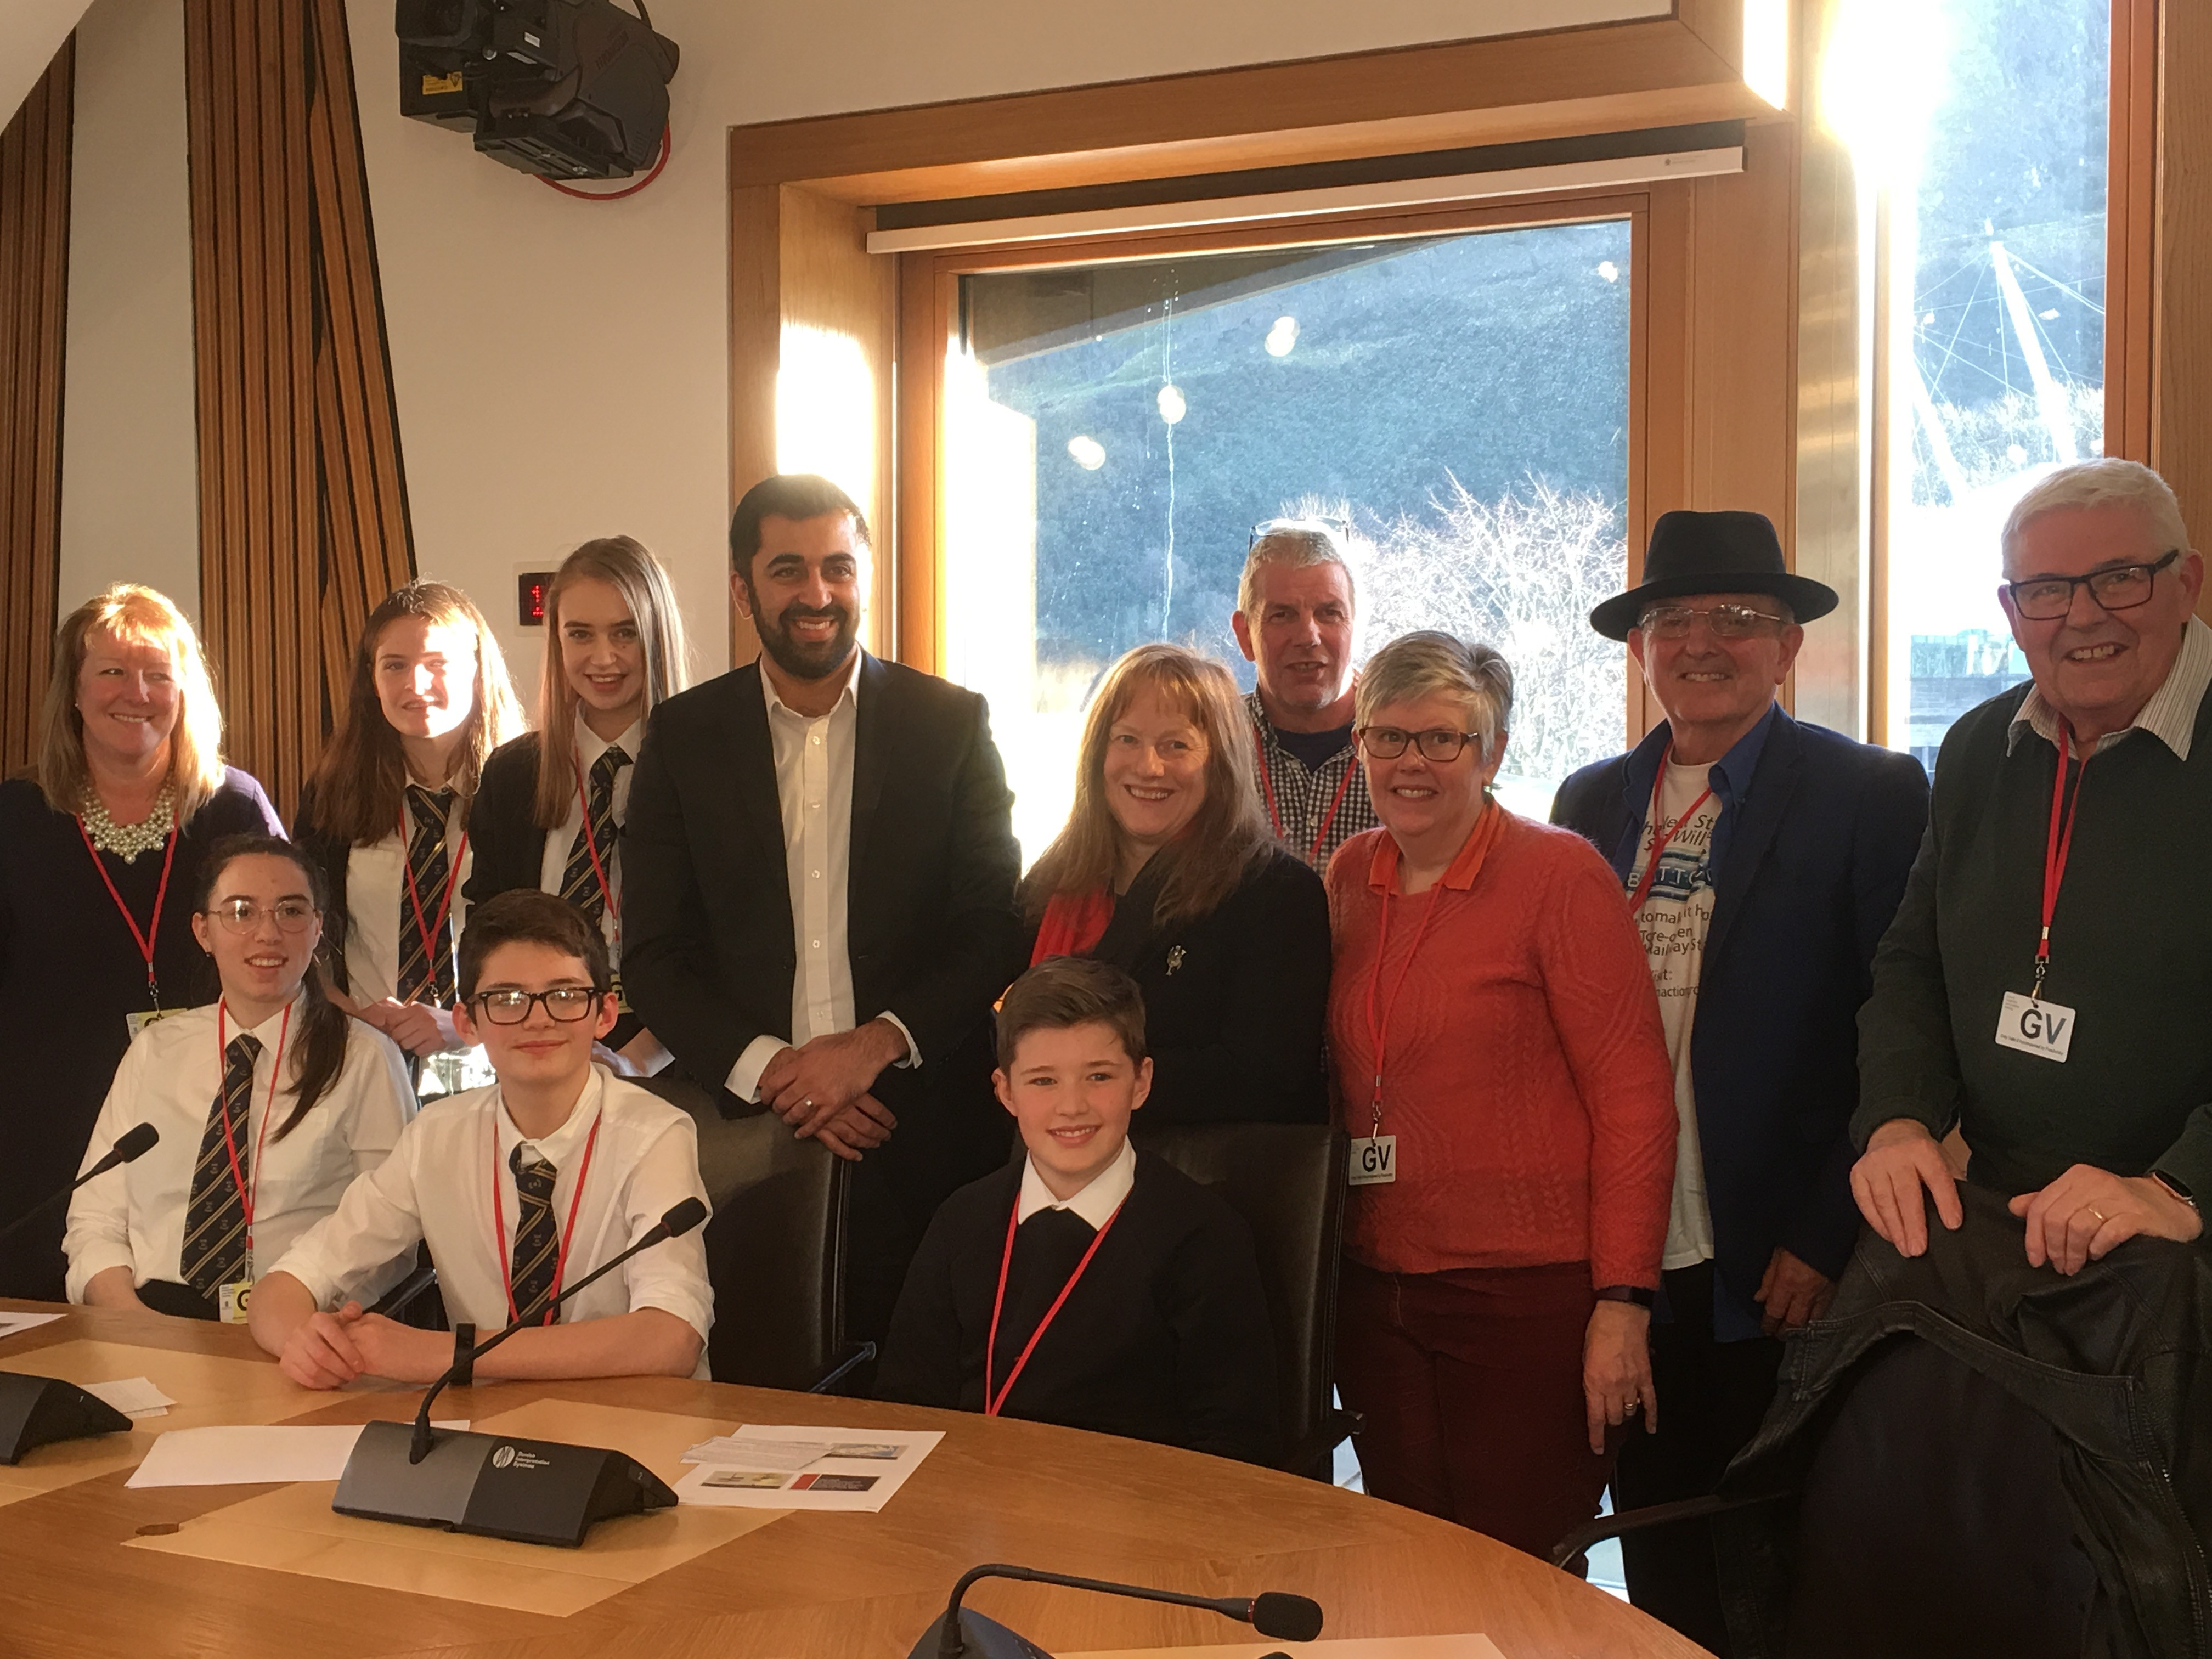 Joan_and_Humza_with_BSAG_and_Moffat_Academy.jpg